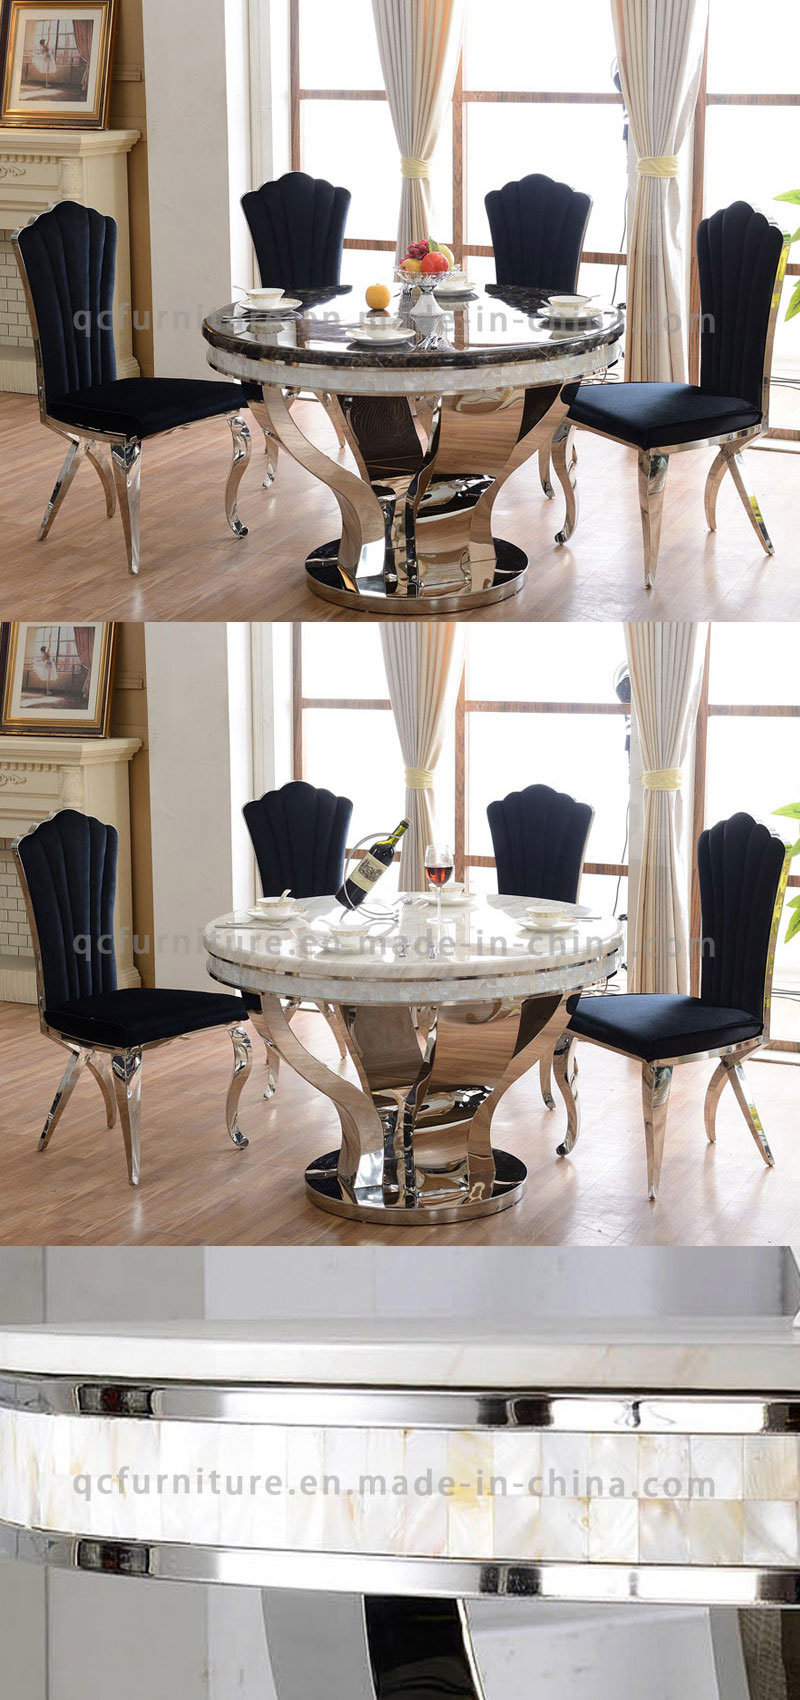 Home Furniture Fashion Design Marble Granite Dining Table